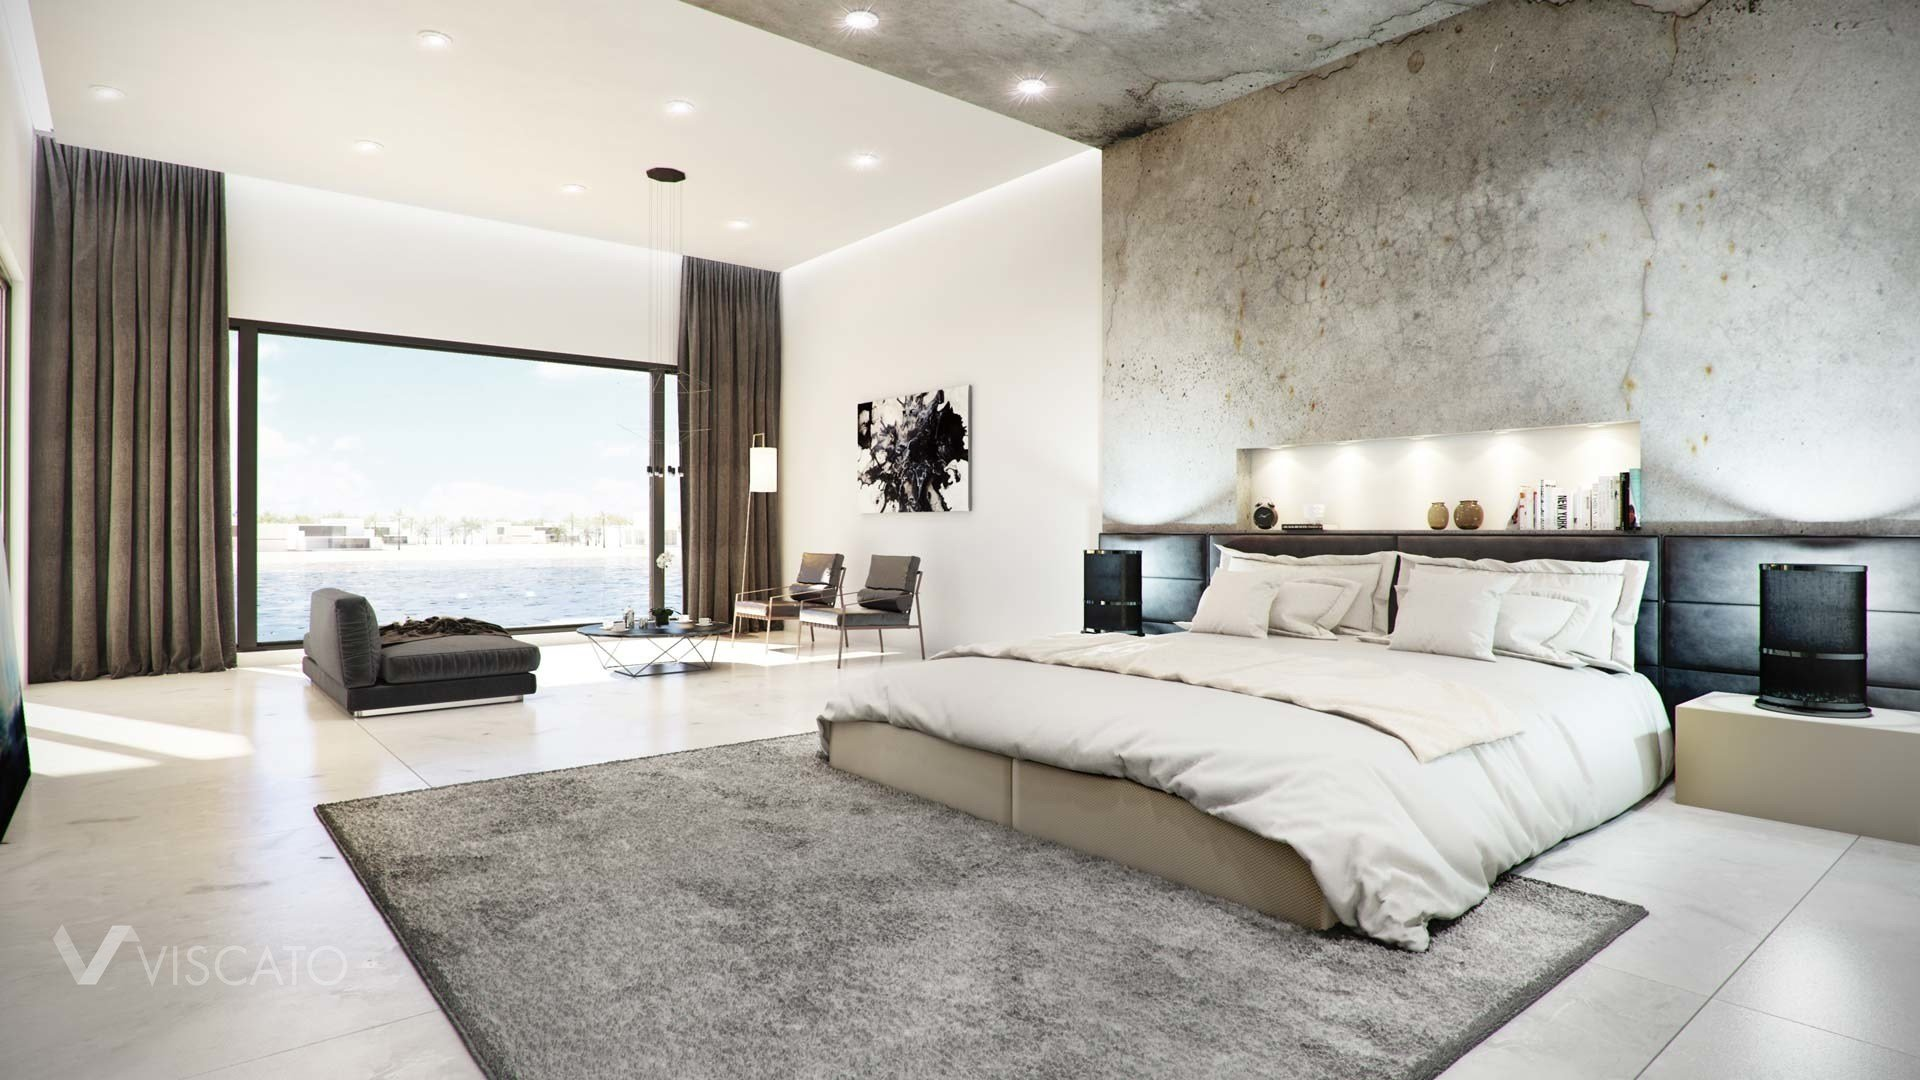 Best Concrete Finished Modern Bedroom – Viscato With Pictures